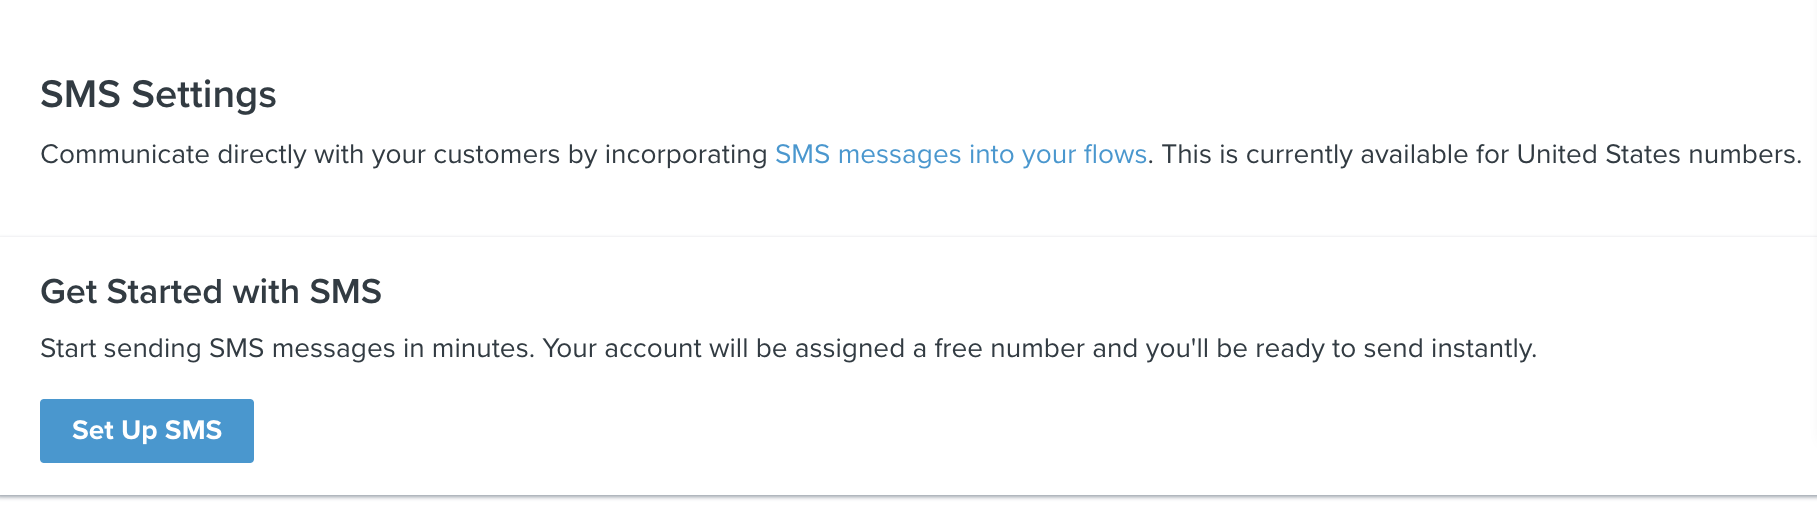 set_up_sms.png